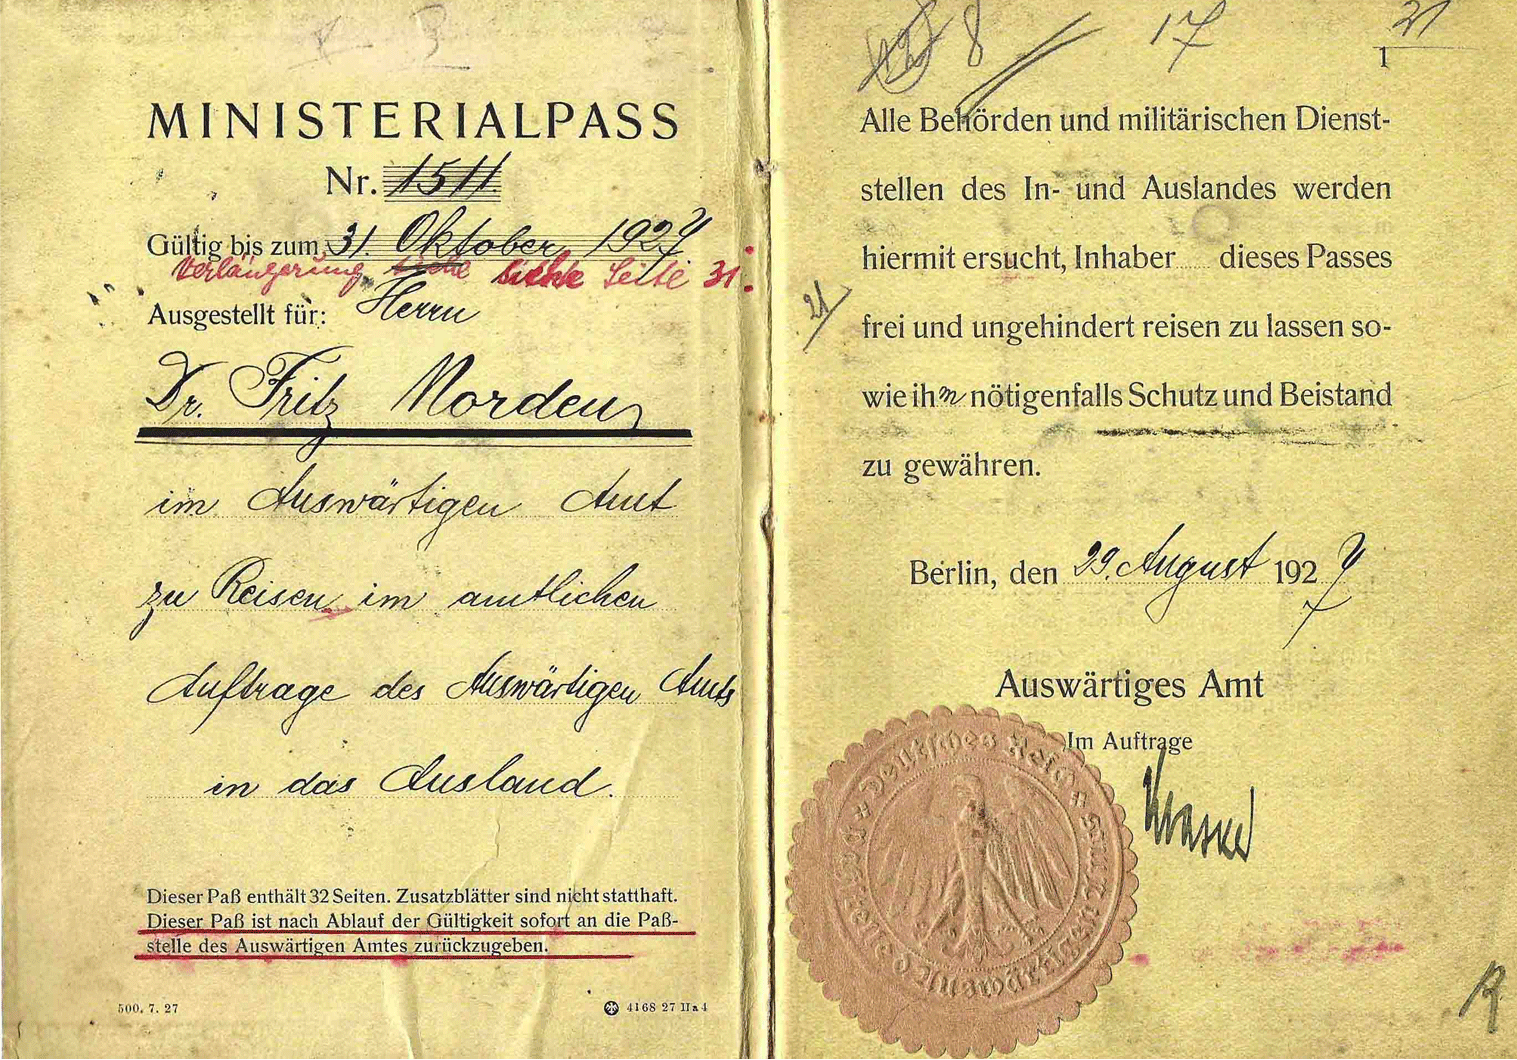 Weimar Republic German diplomatic passport